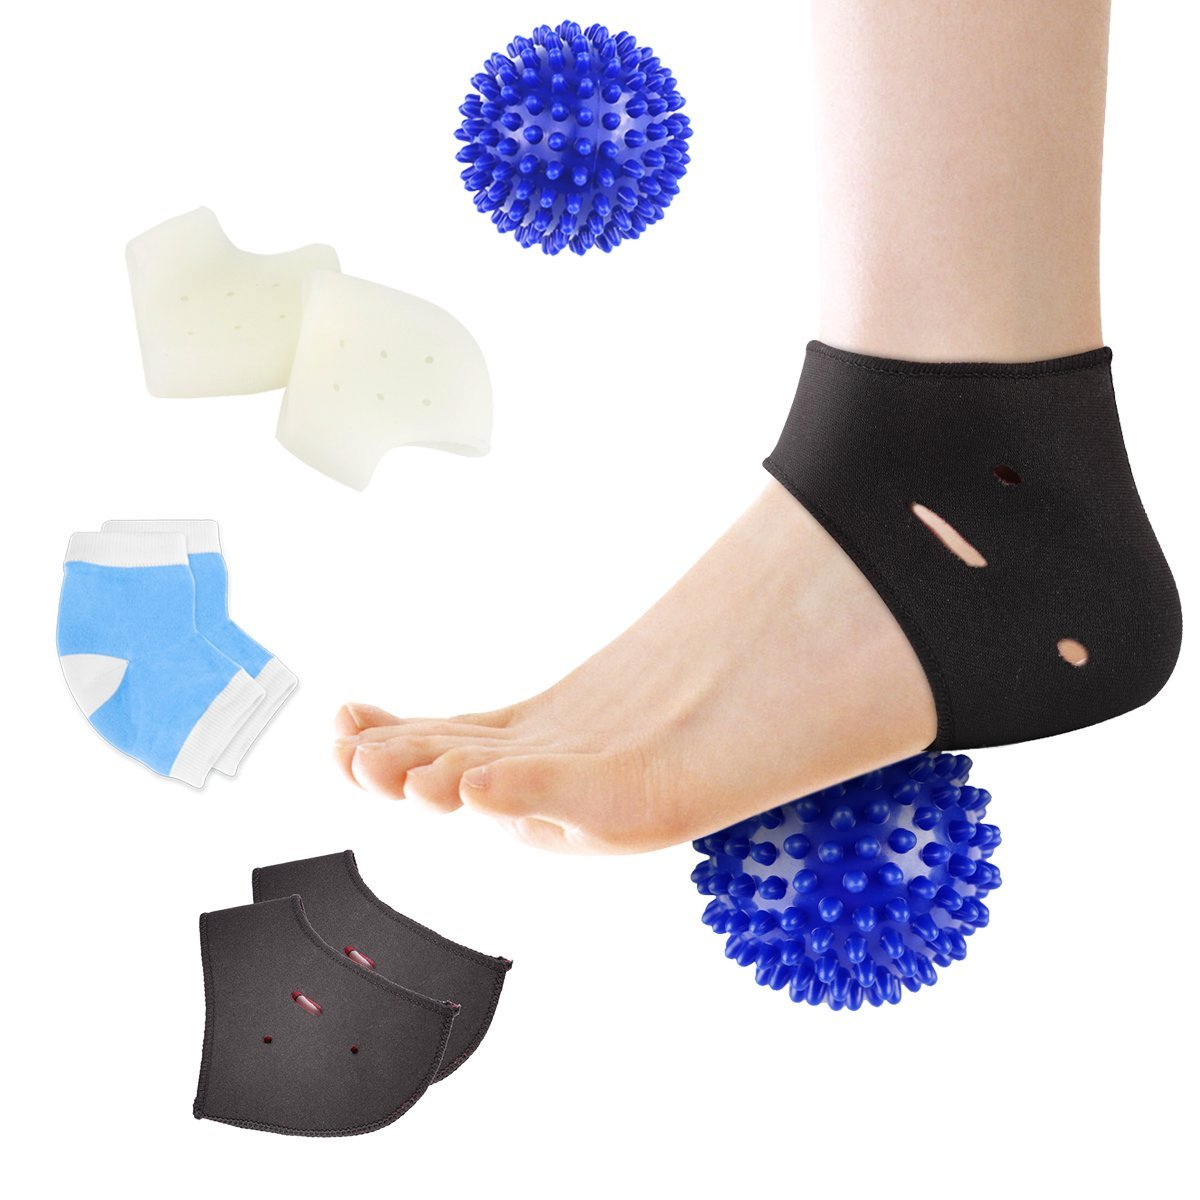 HLYOON H07 Plantar Fasciitis Kit-7PCS Plantar Fasciitis Sleeve Ankle Brace, Heel Support, Socks, Foot Massage Ball for Metatarsal Pain,Foot Arch Support,Relieve Foot Pain by HLYOON